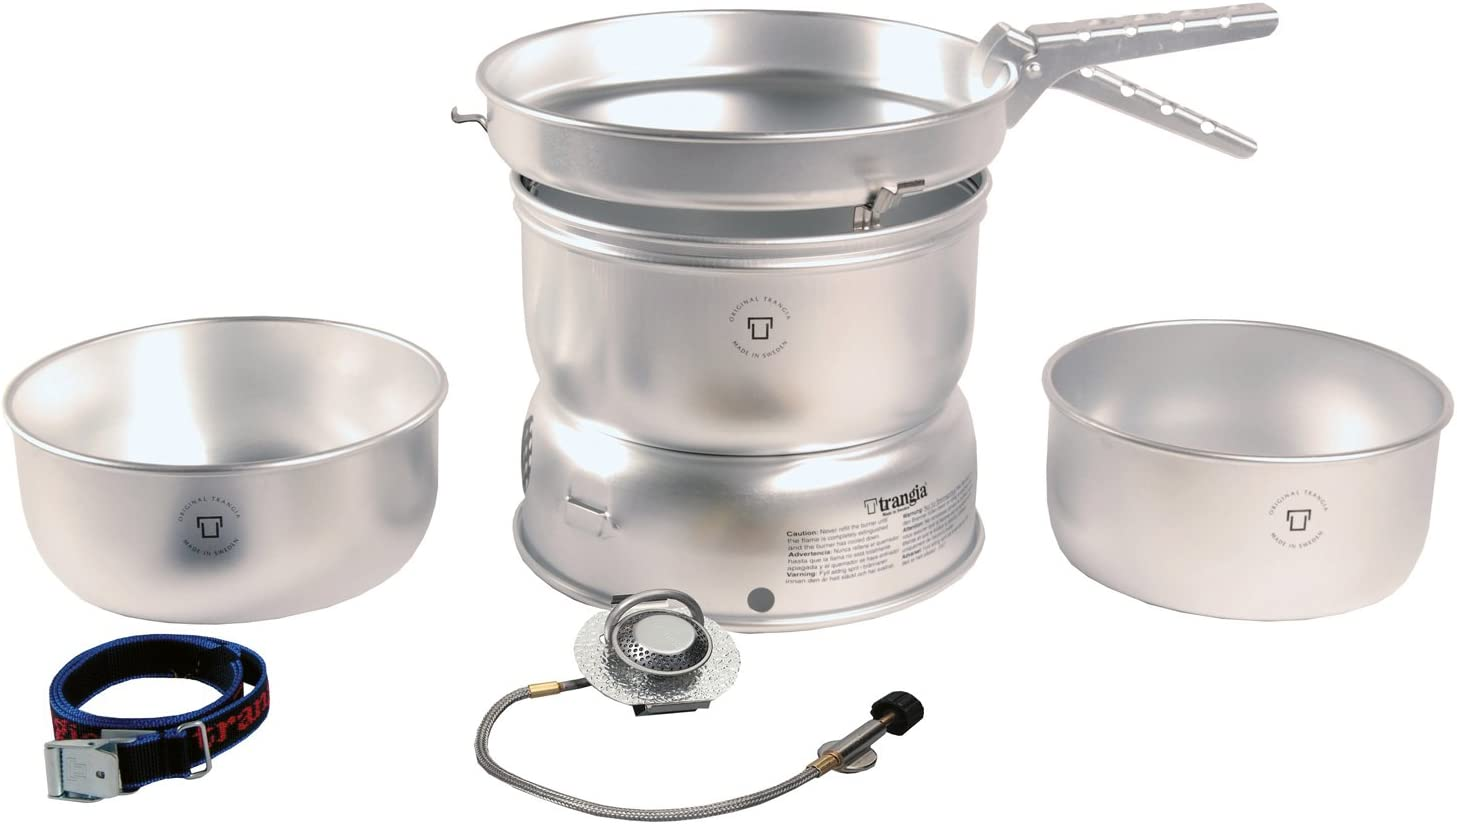 Trangia 27-1 Cooking System with Gas Burner Outdoors Cooking/Eating